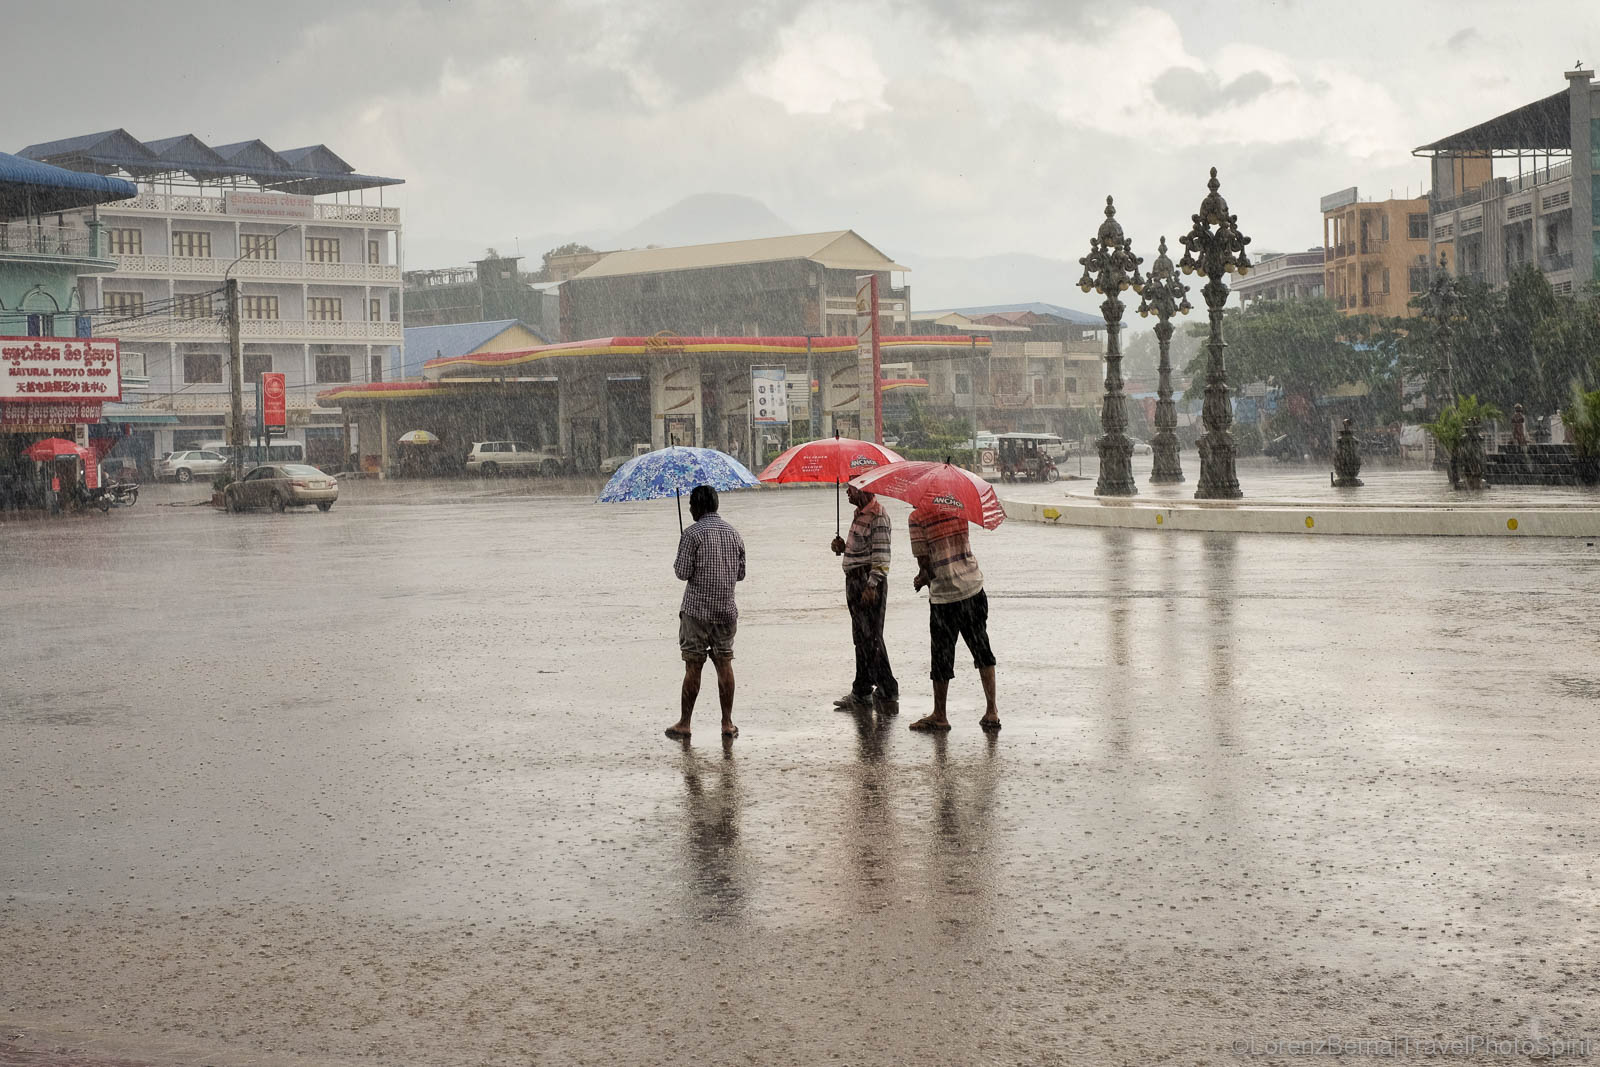 Taxi drivers waiting for customers under the monsoon rain in Kampot, Cambodia